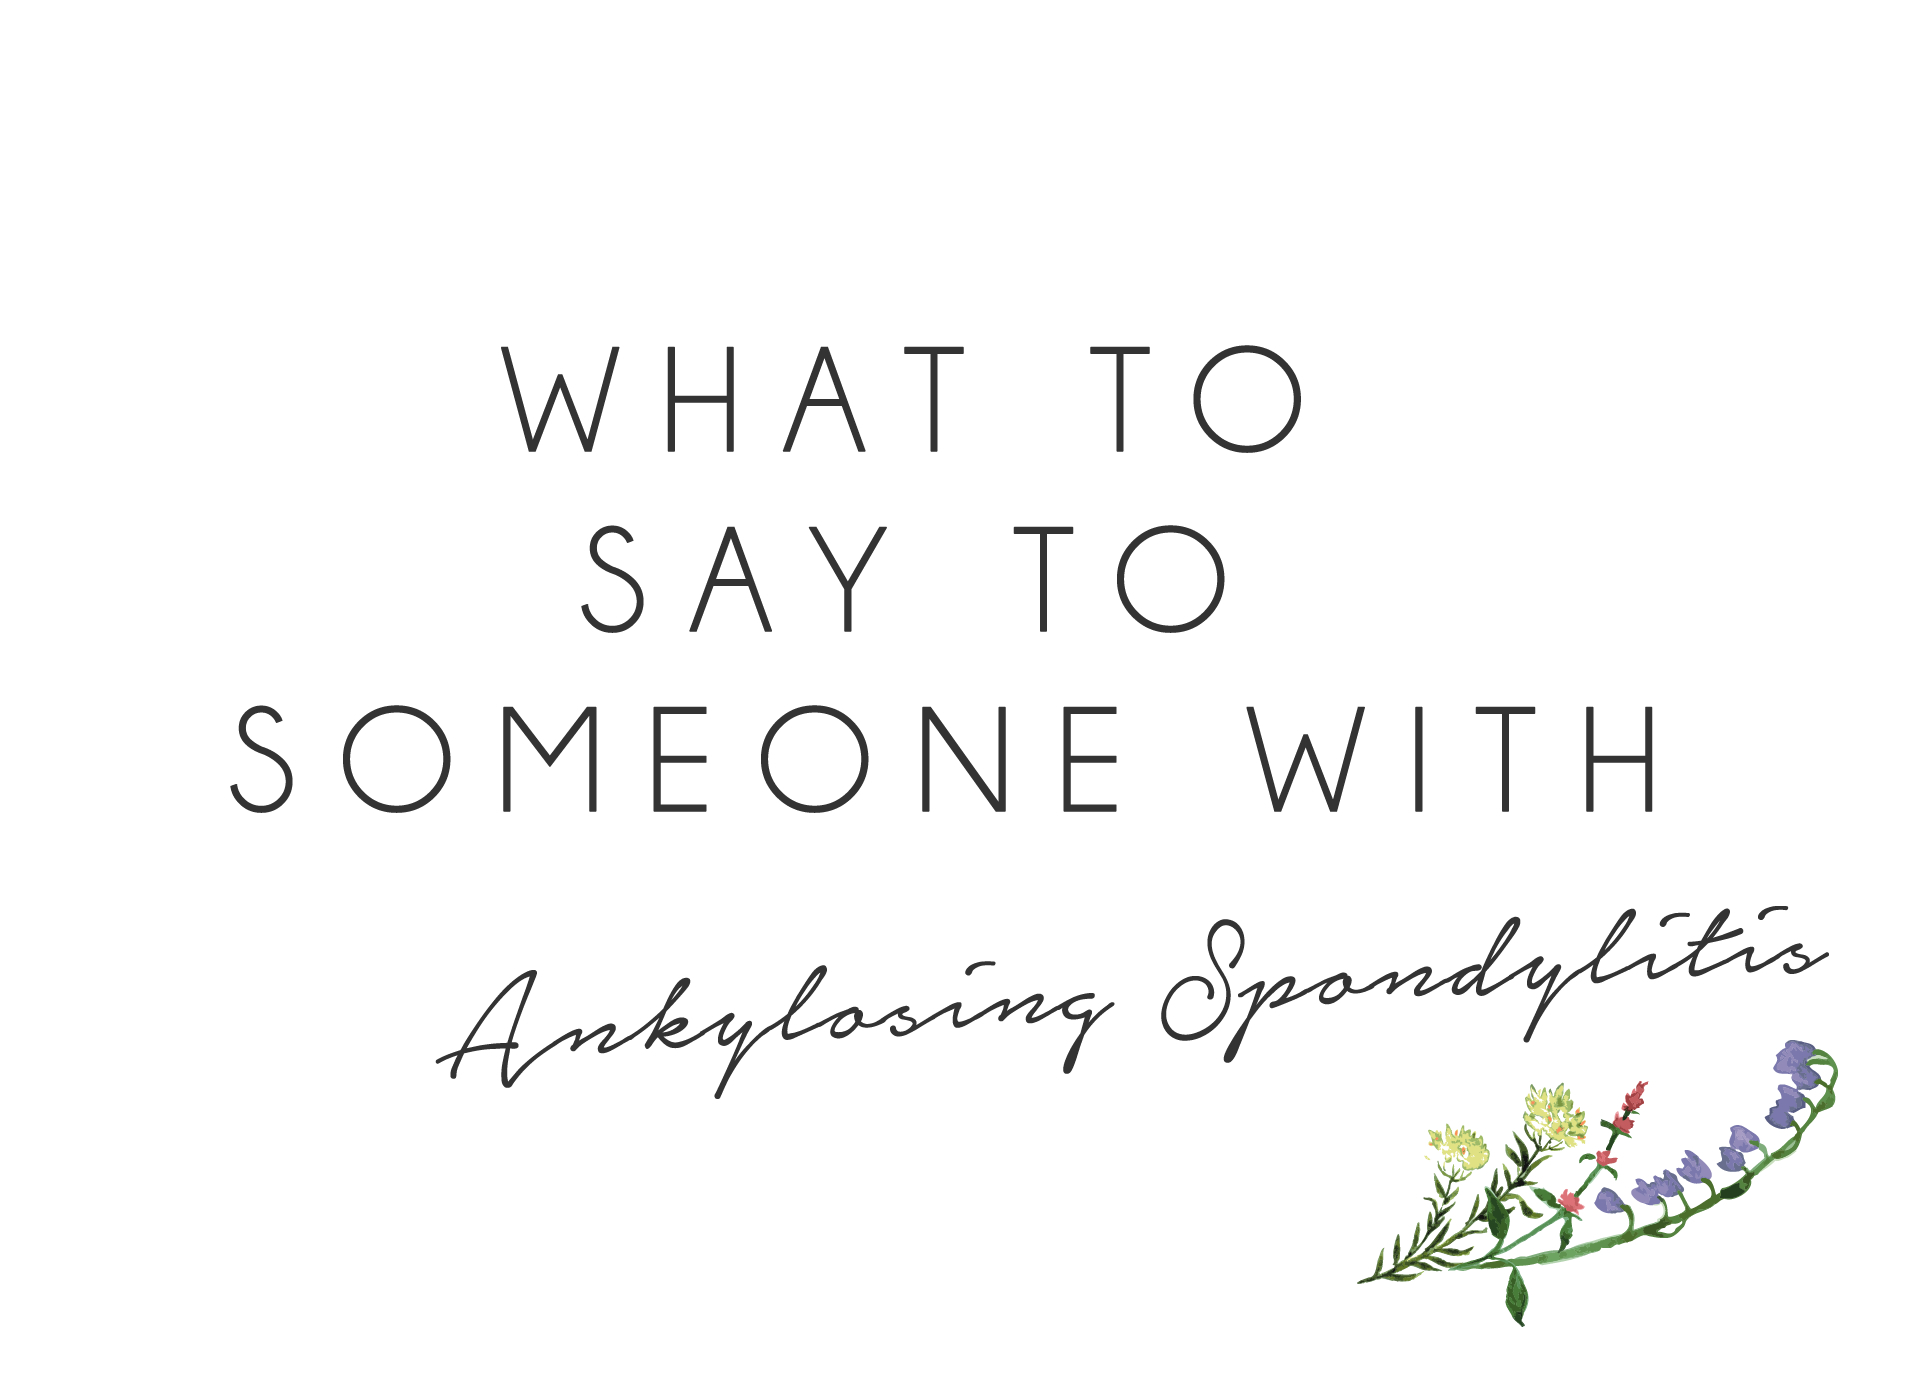 What to say to someone with ankylosing spondylitis